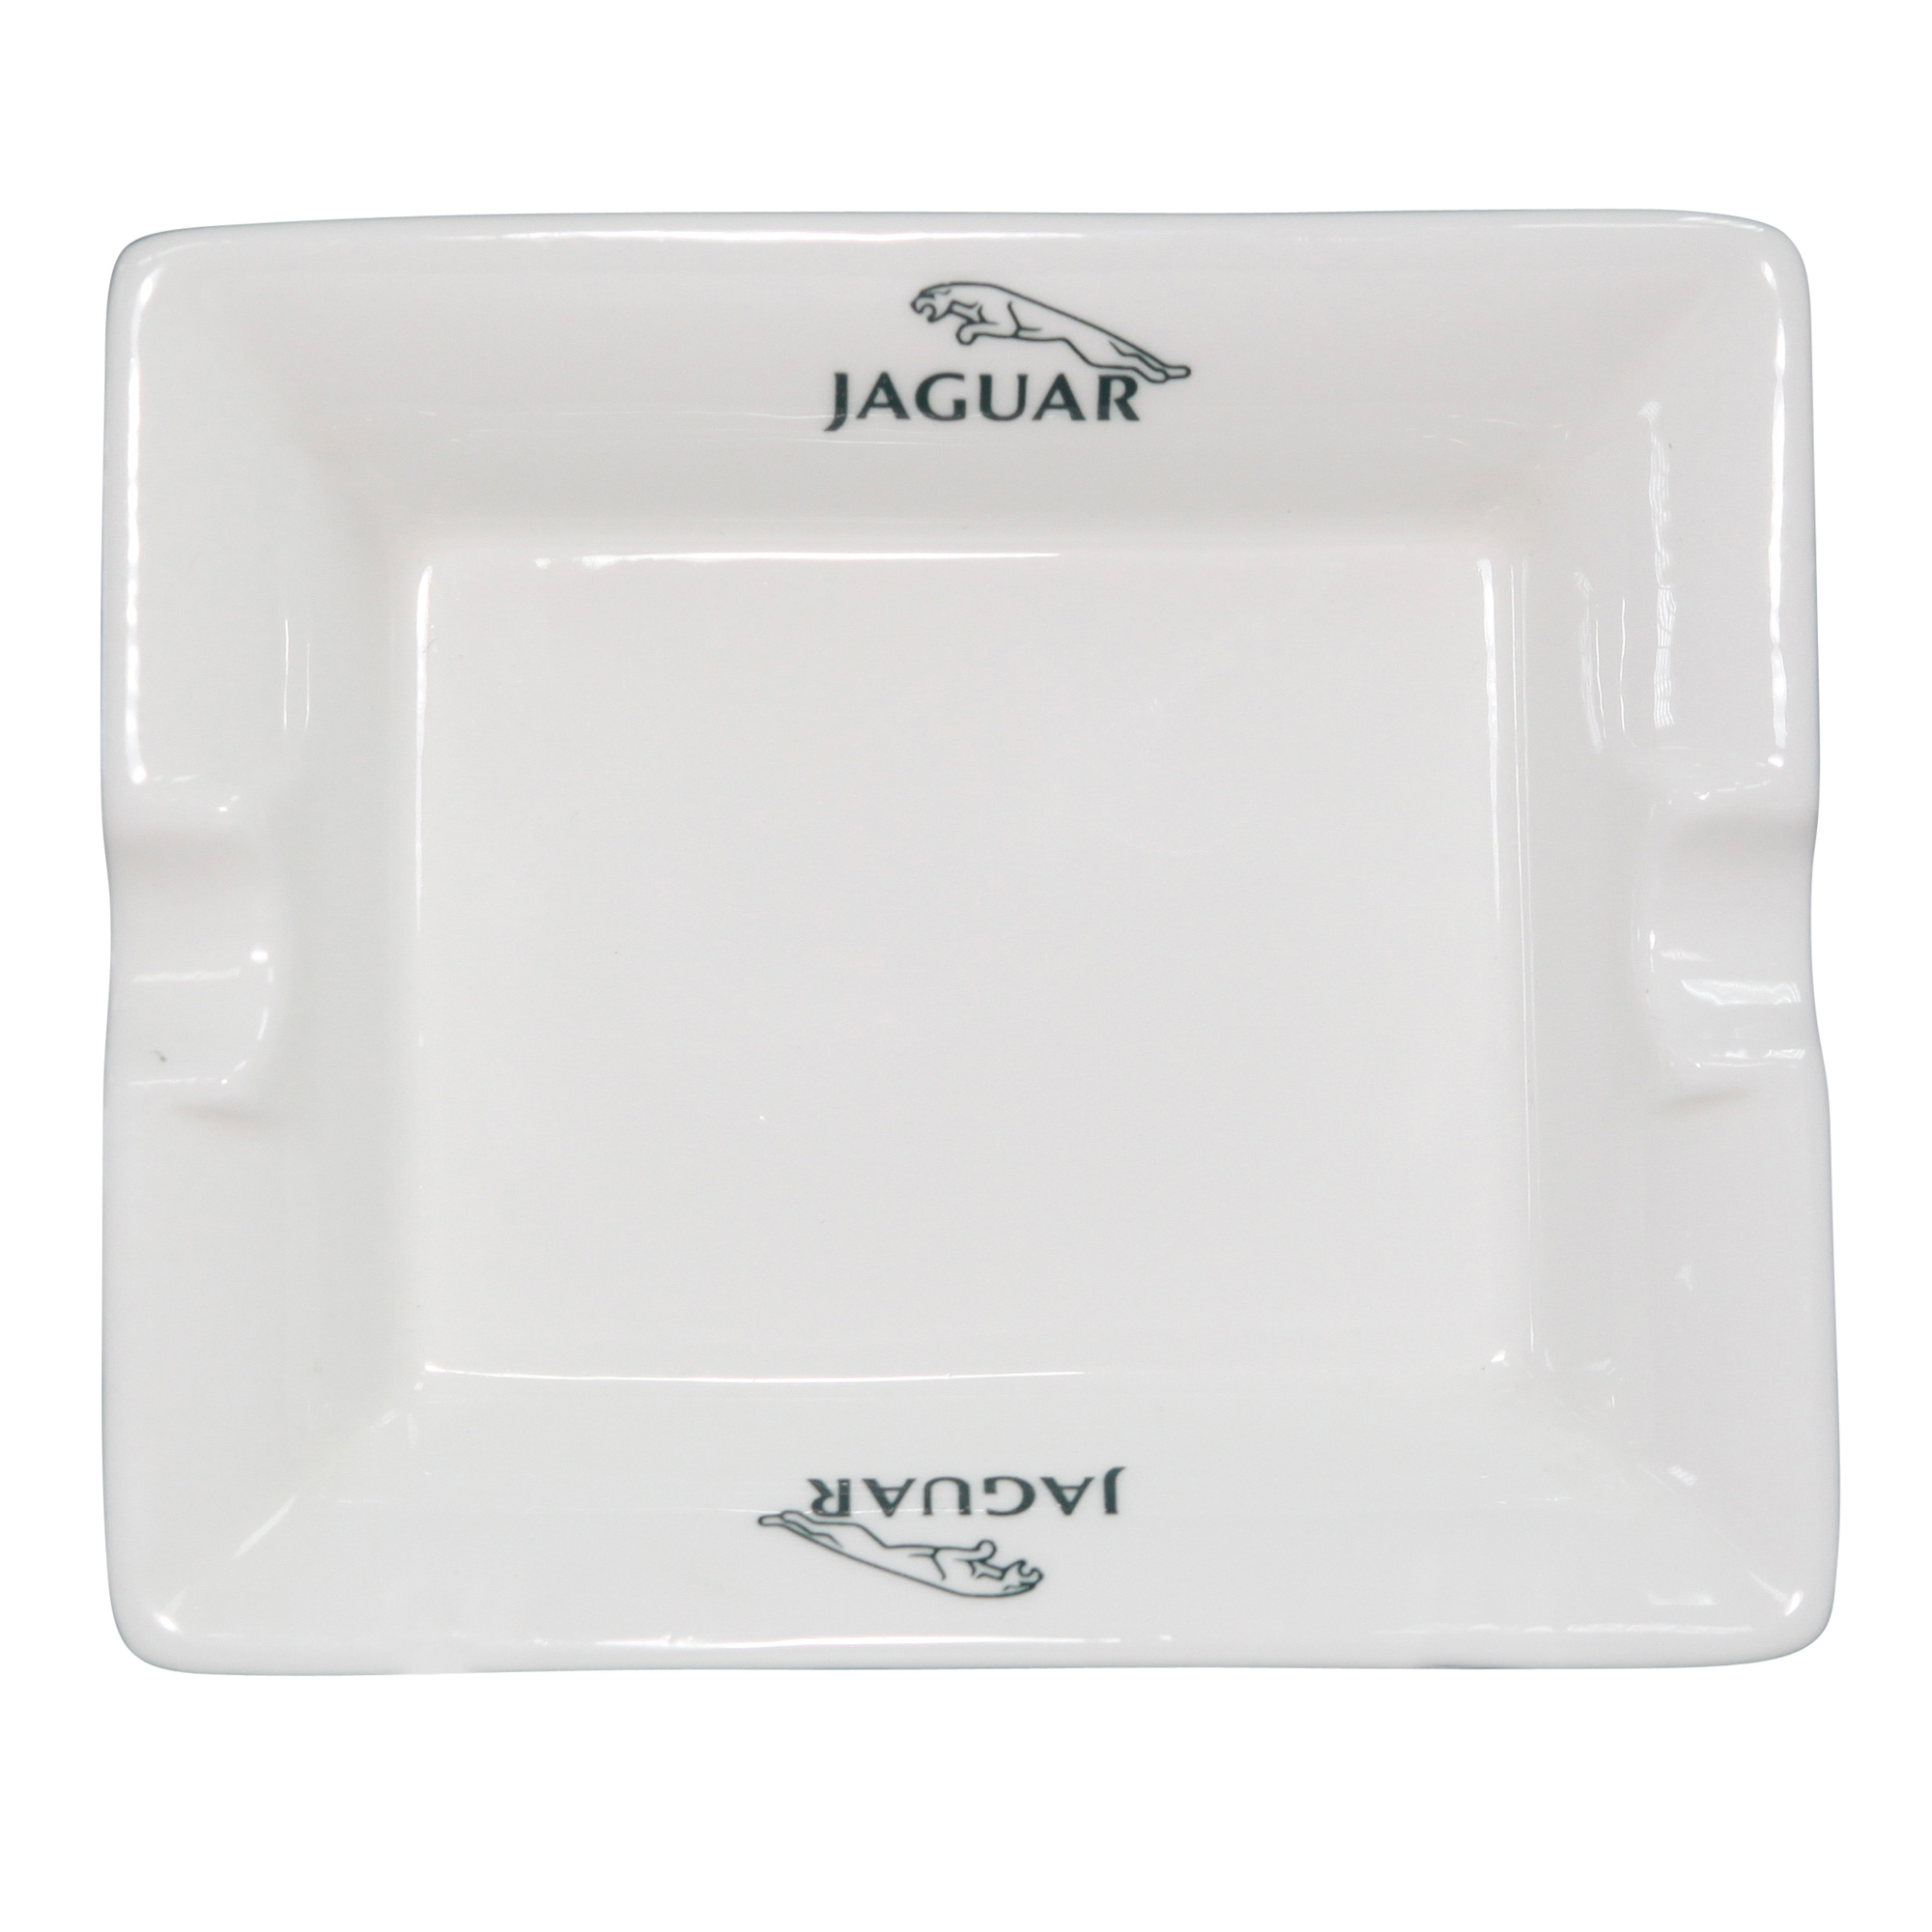 Jaguar Ashtray